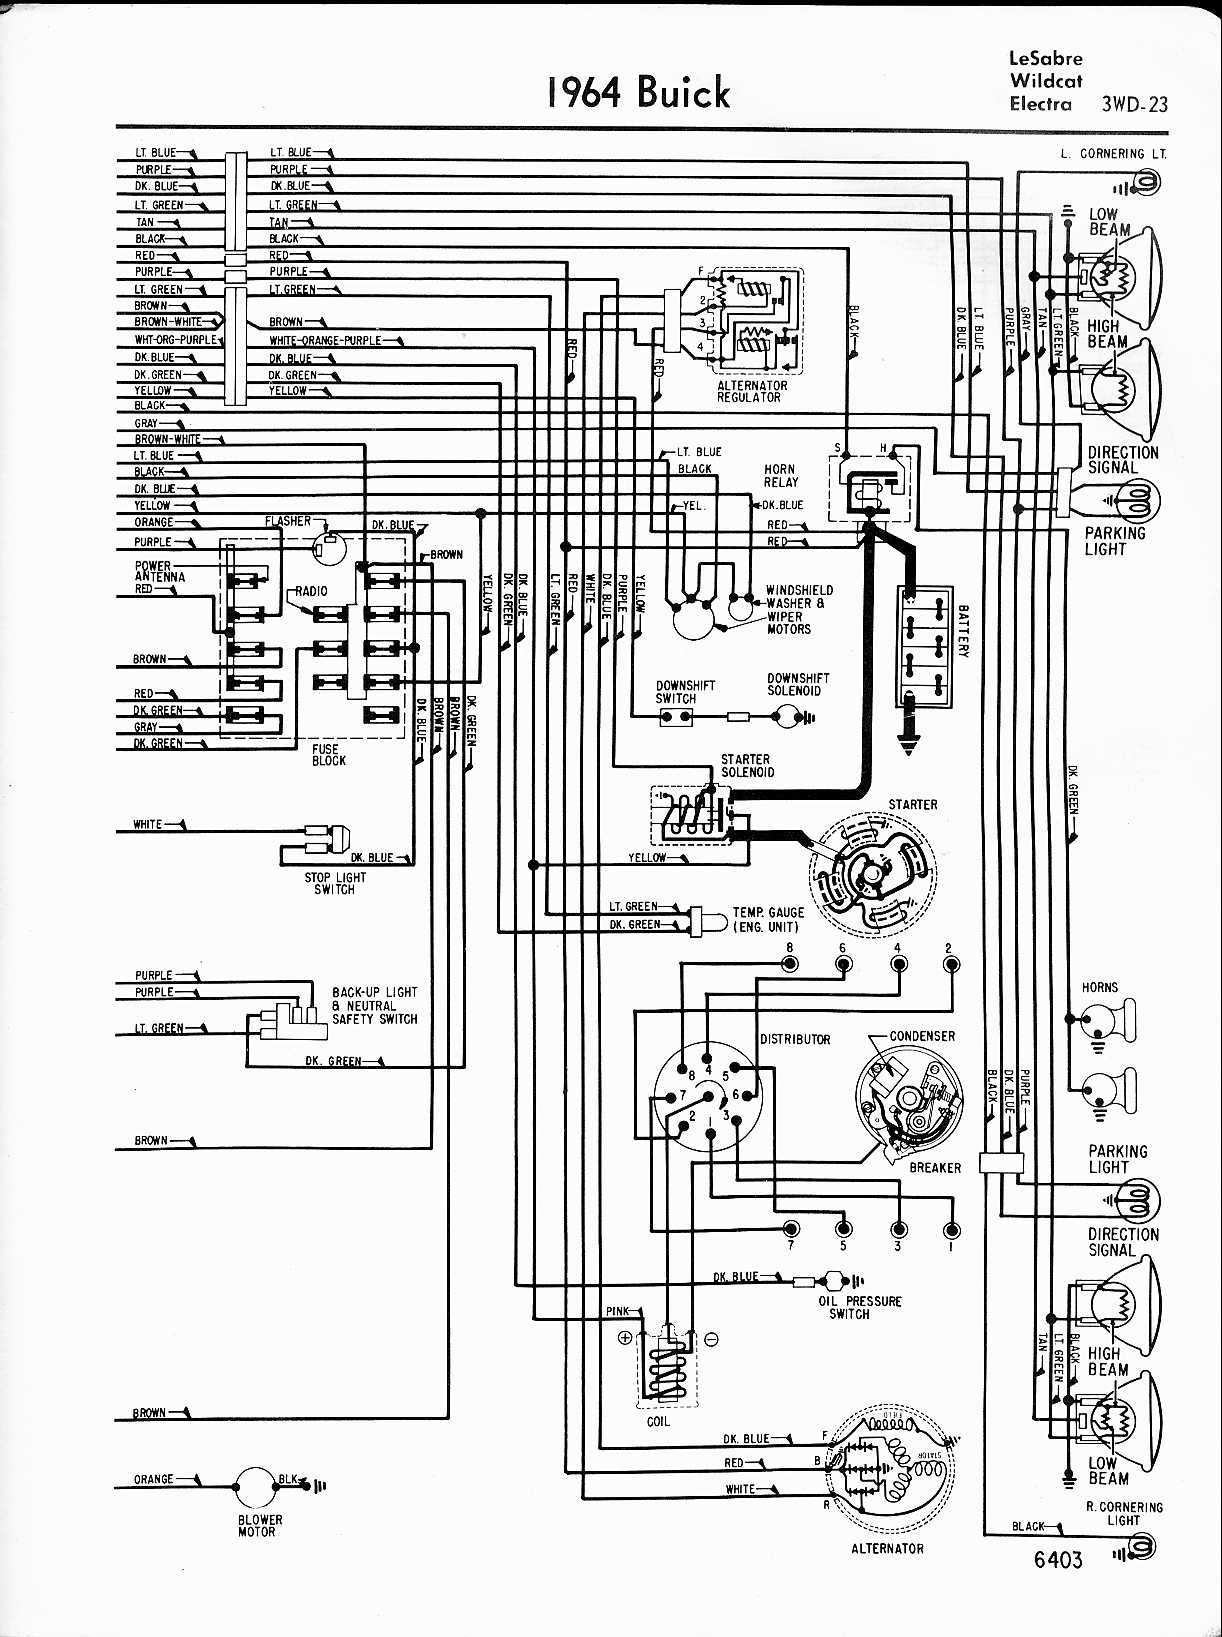 buick headlight wiring wire center u2022 rh grooveguard co 2000 Buick Century Heater Diagram 2000 Buick Century Heater Diagram